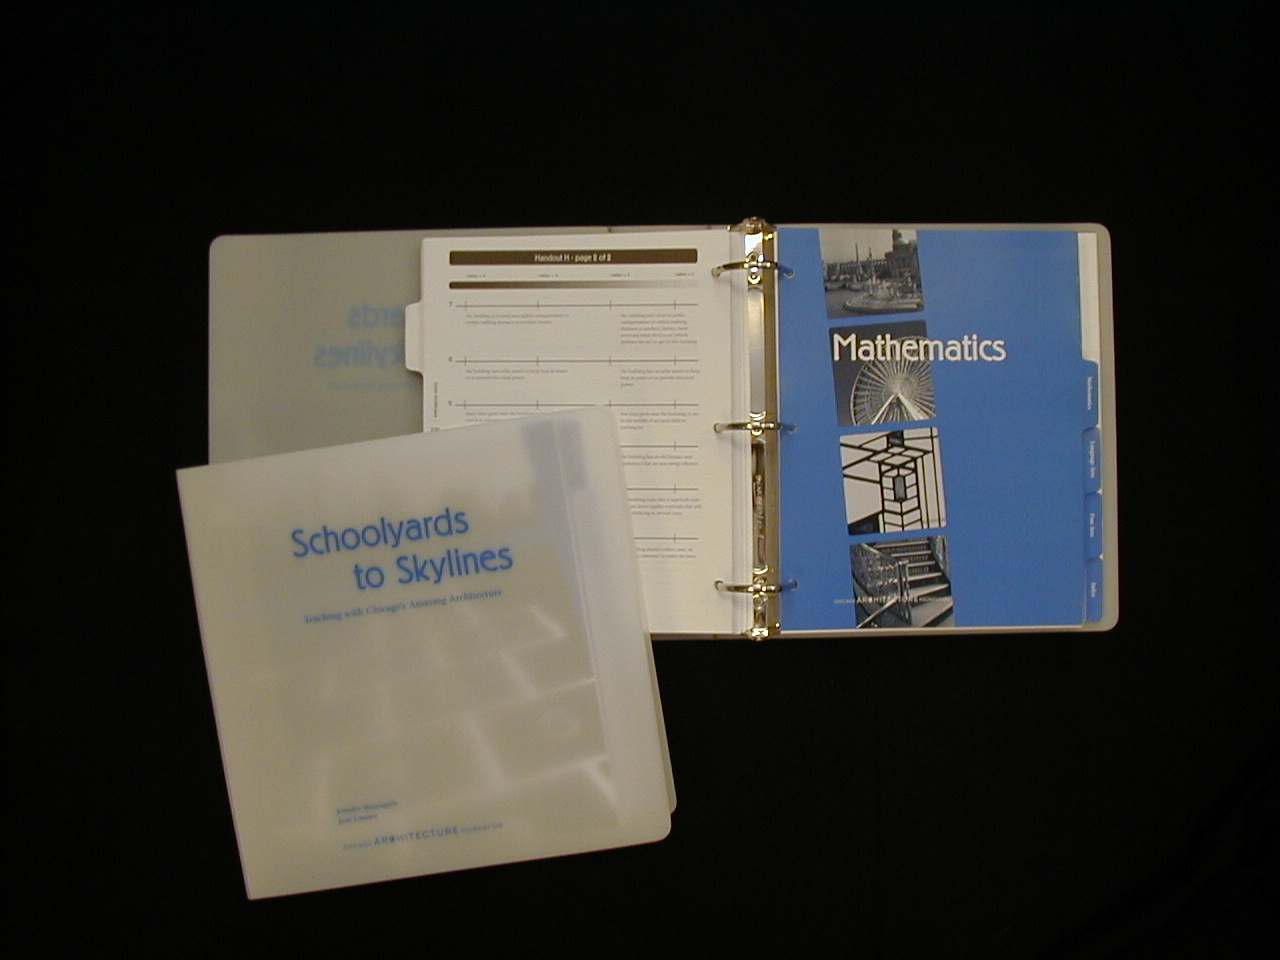 """I am the primary author of """"Schoolyards to Skylines: Teaching with Chicago's Amazing Architecture"""", (2002) a K-8 teacher resource book that uses local architecture as a tool for teaching the 5 core academic subjects."""